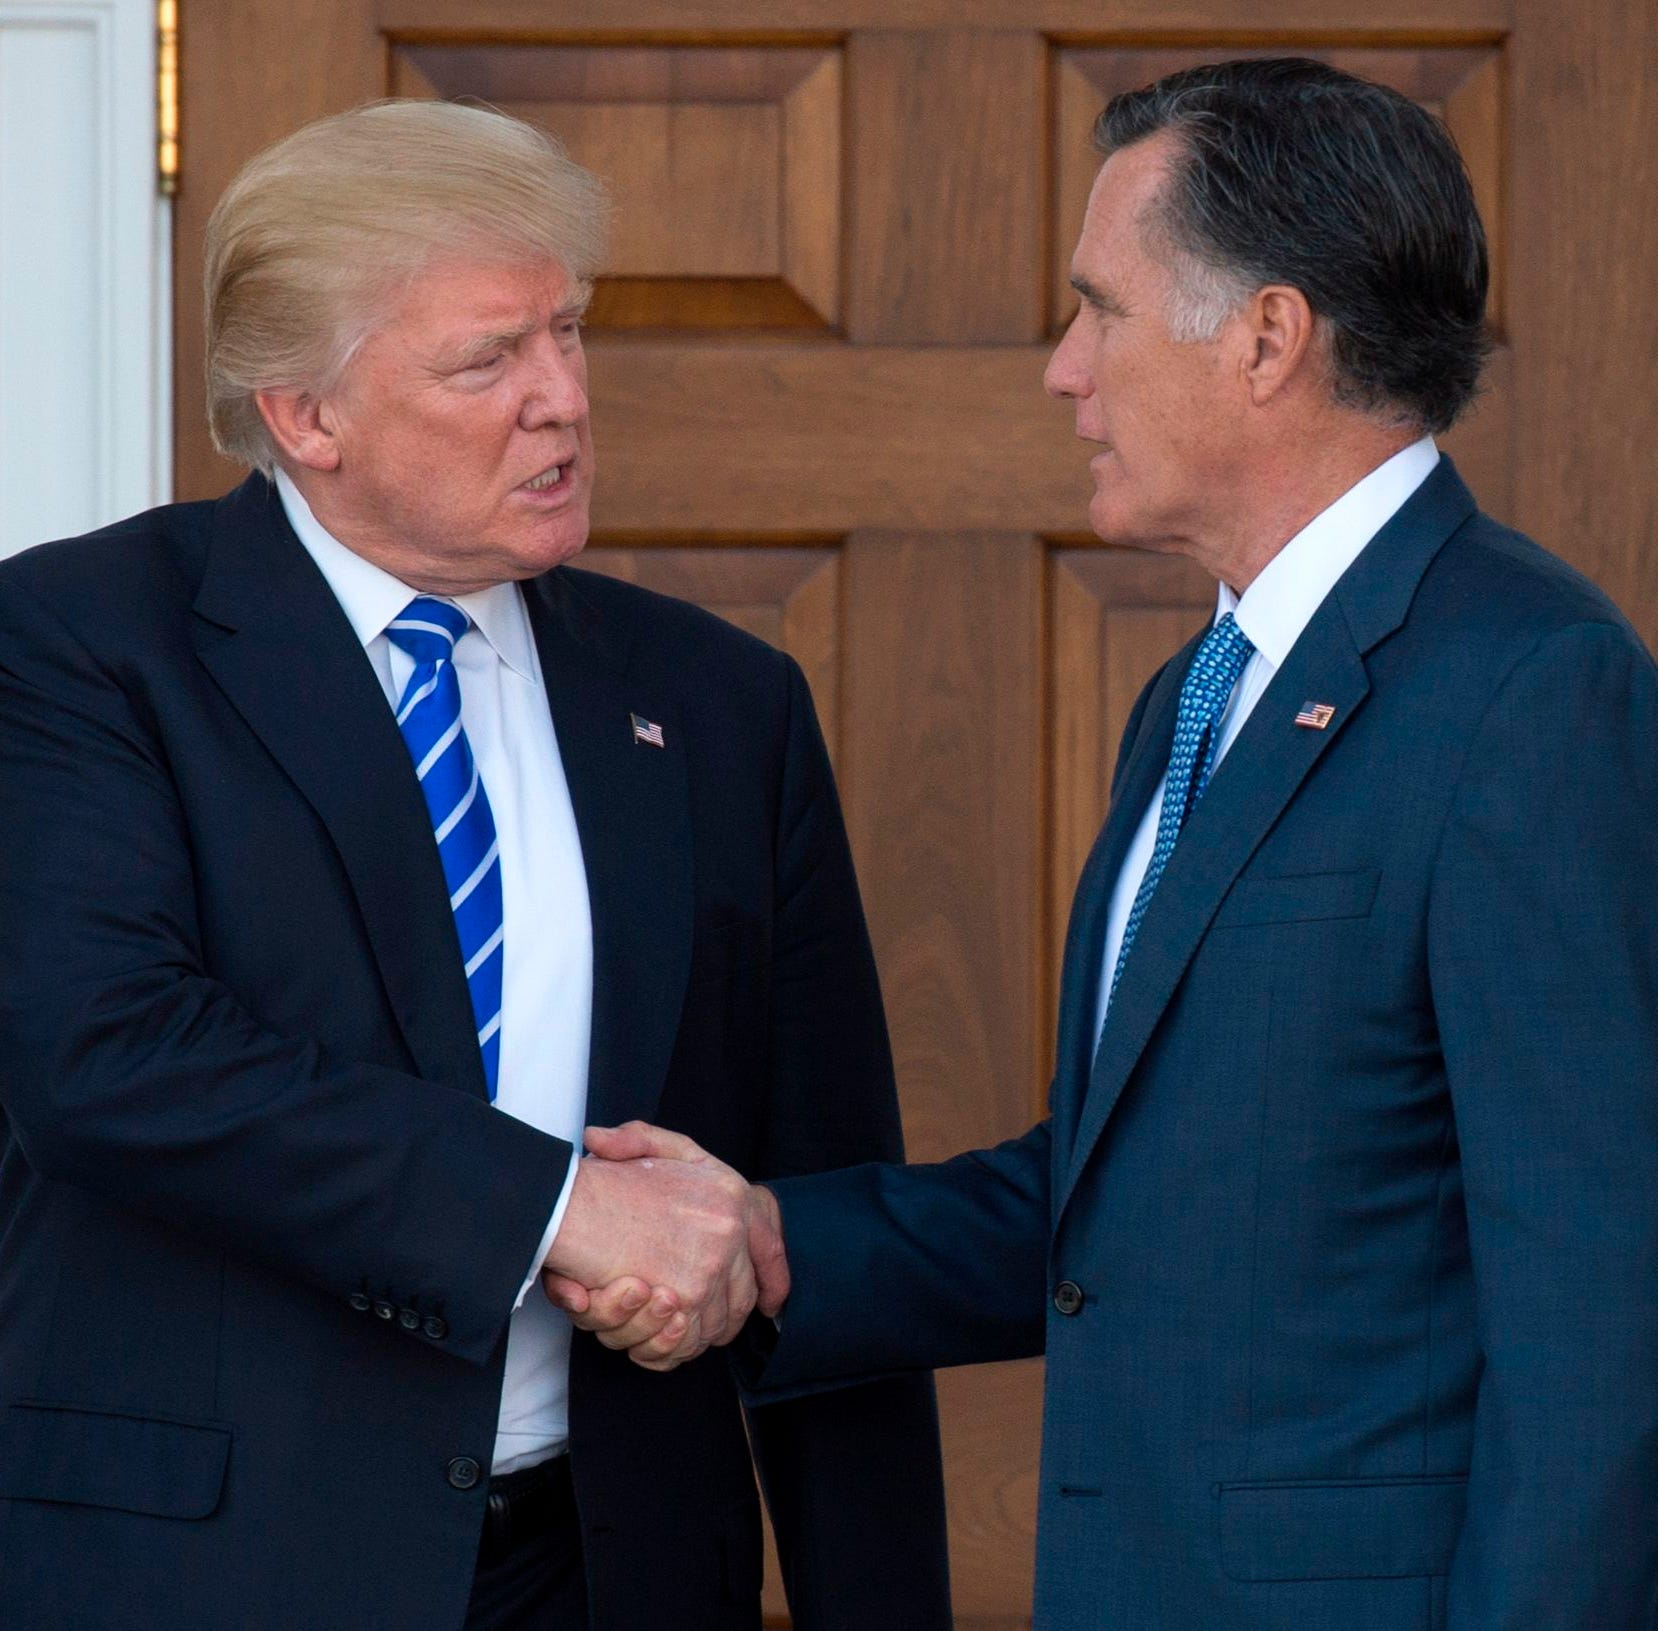 Trump fires back at Romney after critical op-ed: 'I won big and he didn't'